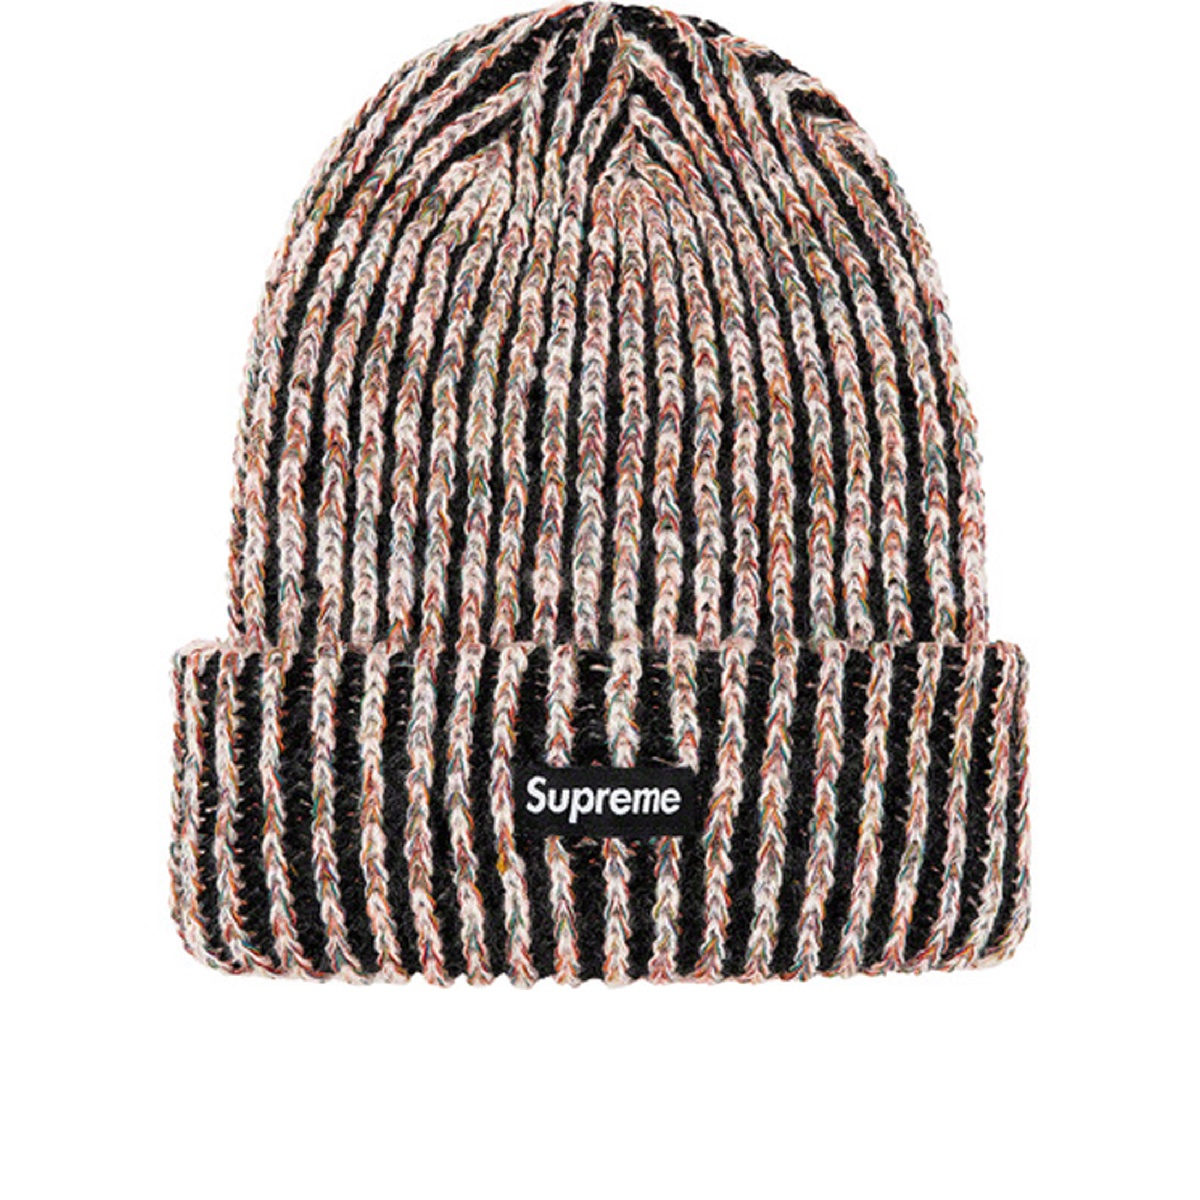 Supreme Rainbow Knit Loose Gauge Beanie Black